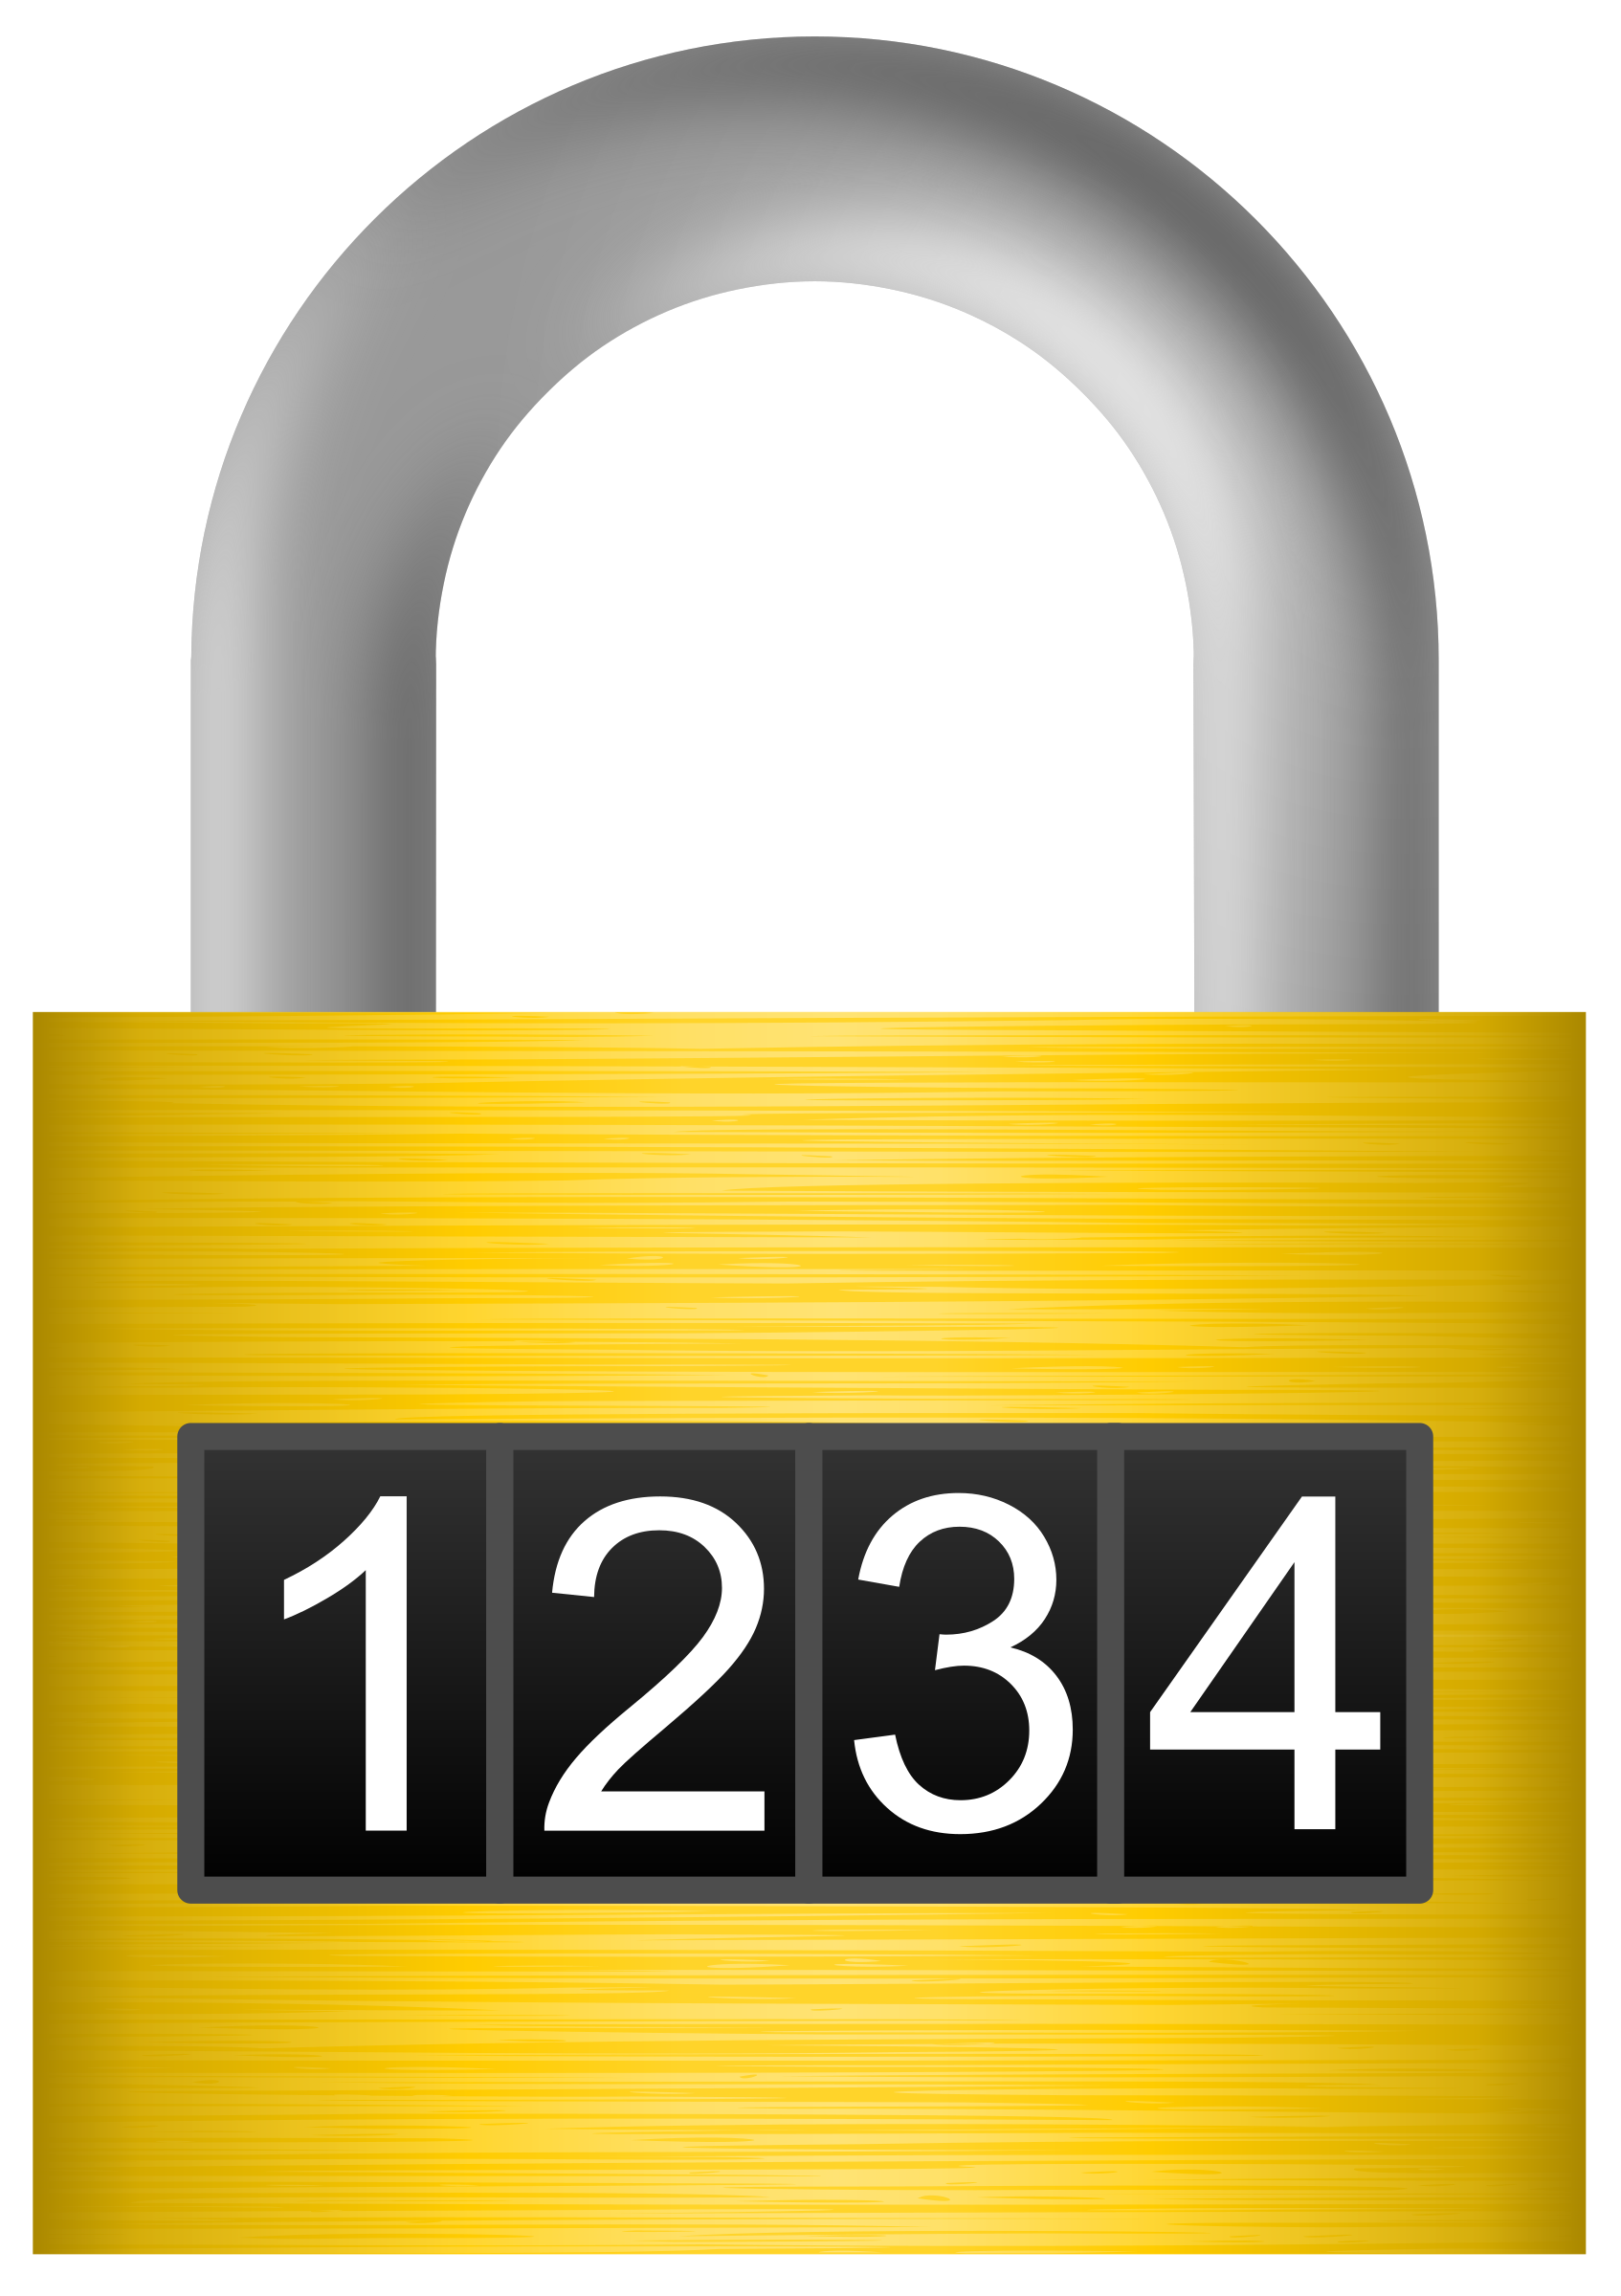 Combination big image png. Lock clipart small